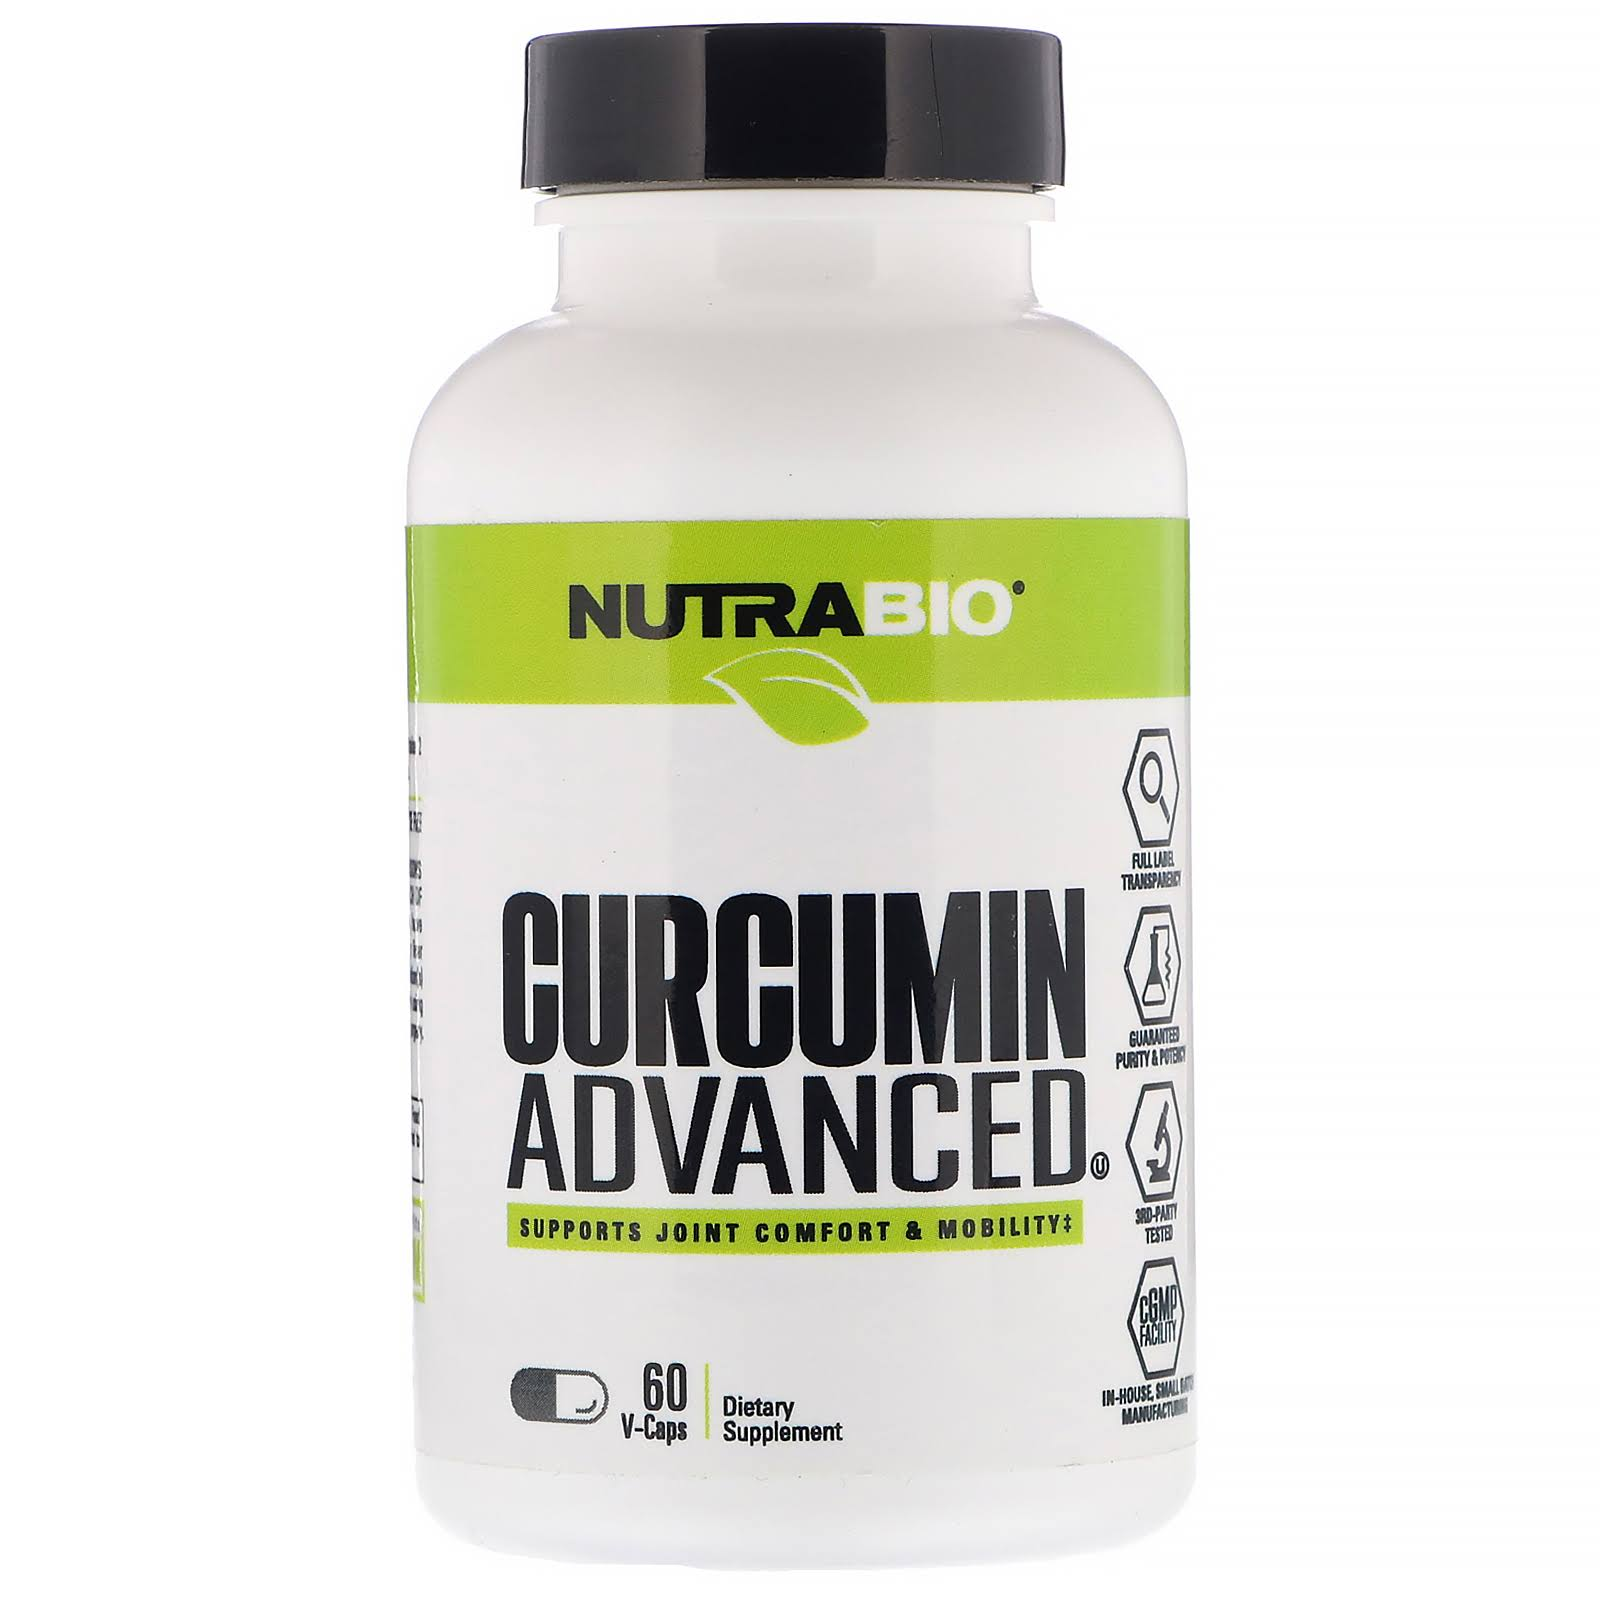 NutraBio Labs Curcumin Advanced 60 V-Caps